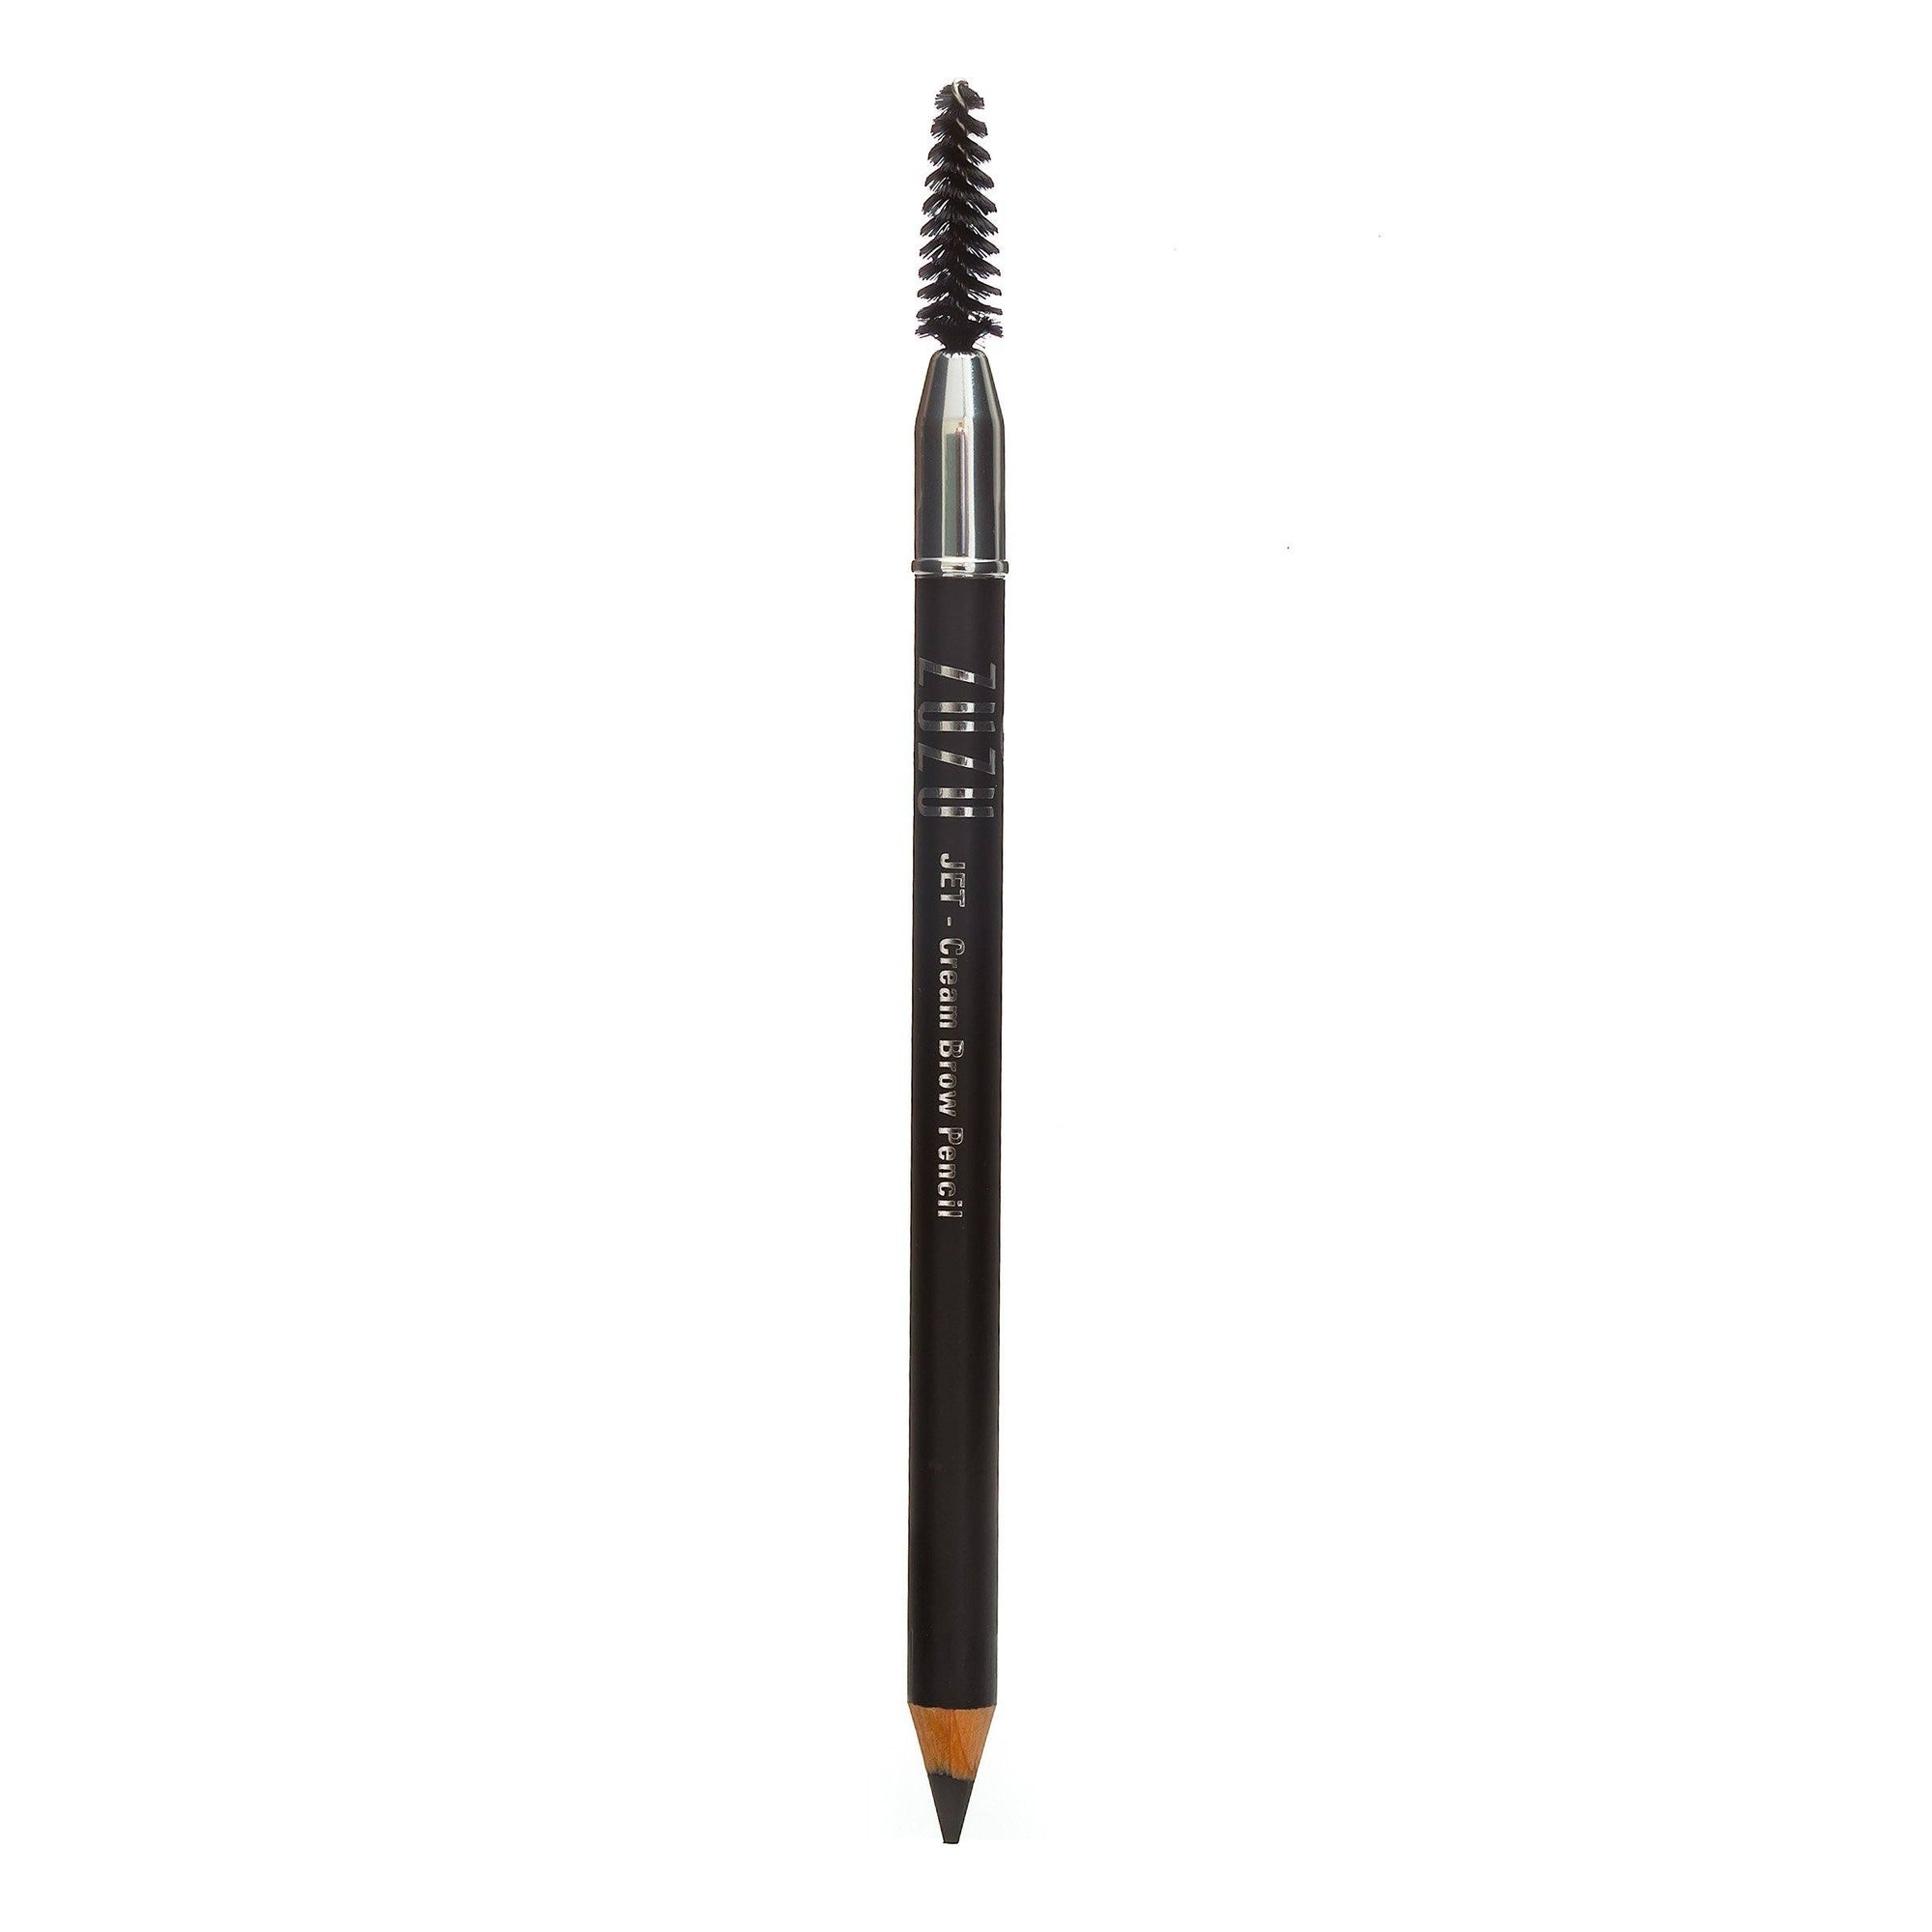 Beauty & Skin Care - Zuzu Luxe - Gluten Free Cream Brow Pencil, Jet